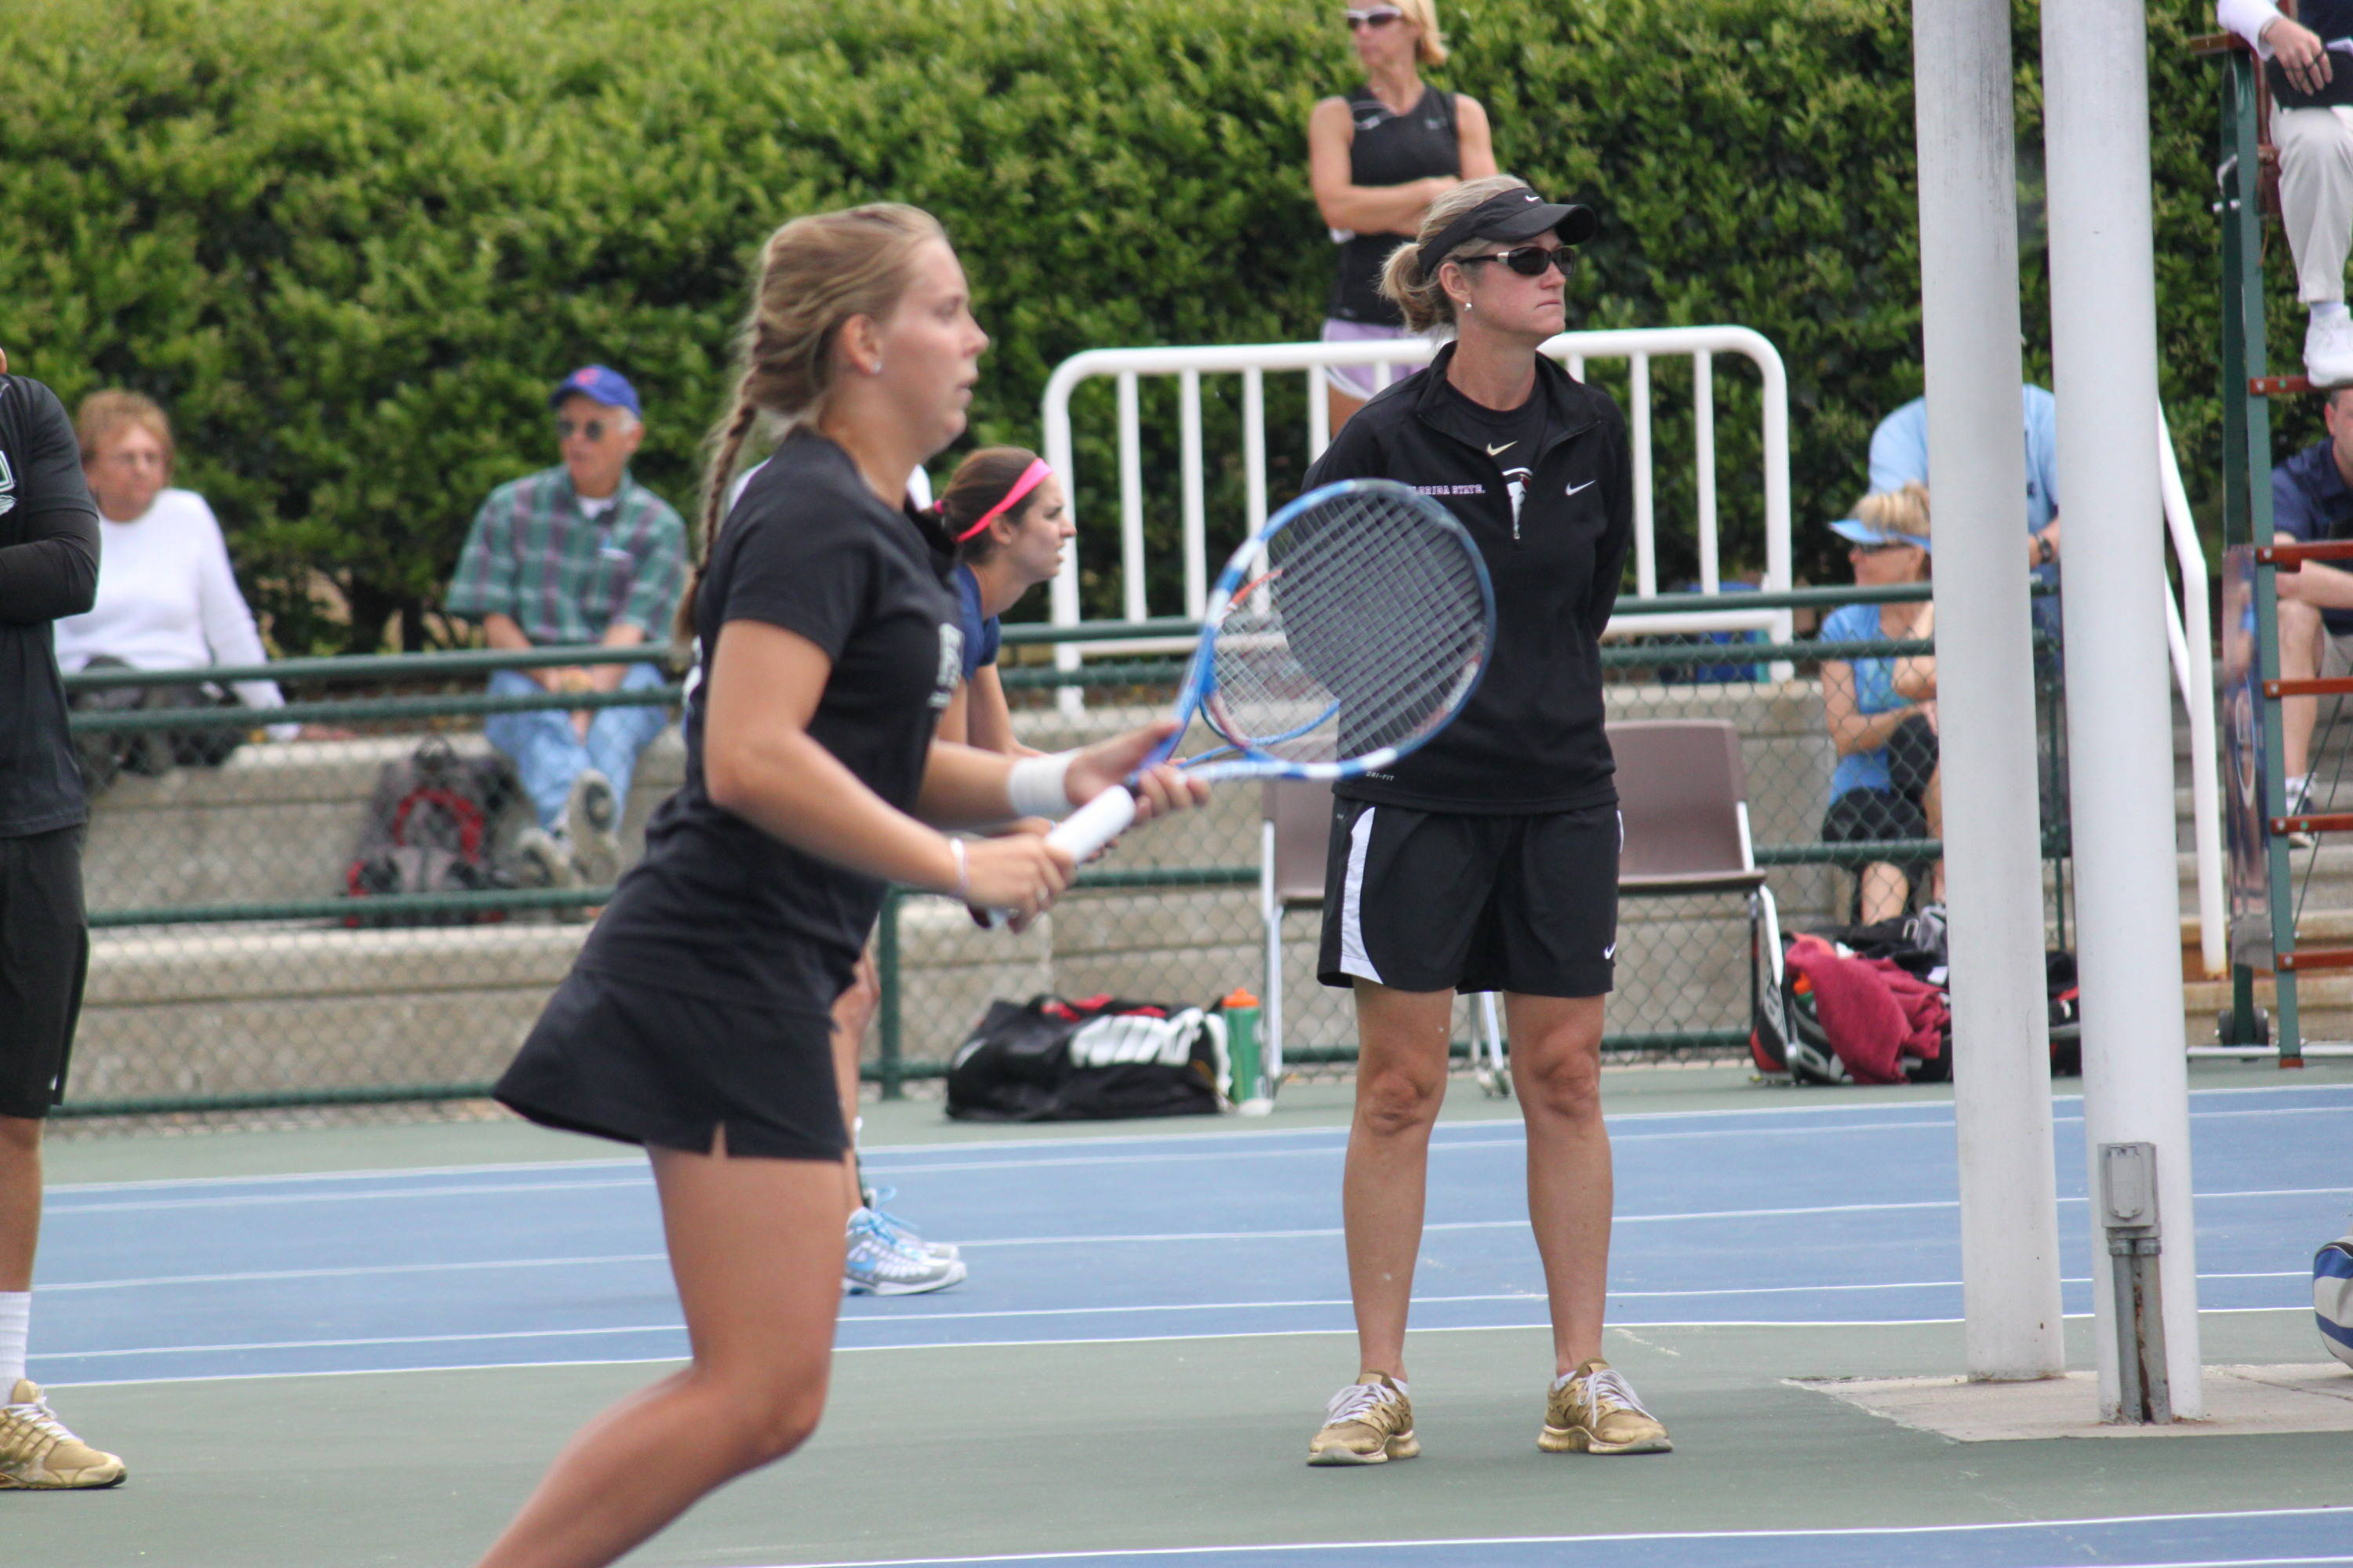 Mia Vriens on court two with Head Coach Jennifer Hyde looking on.